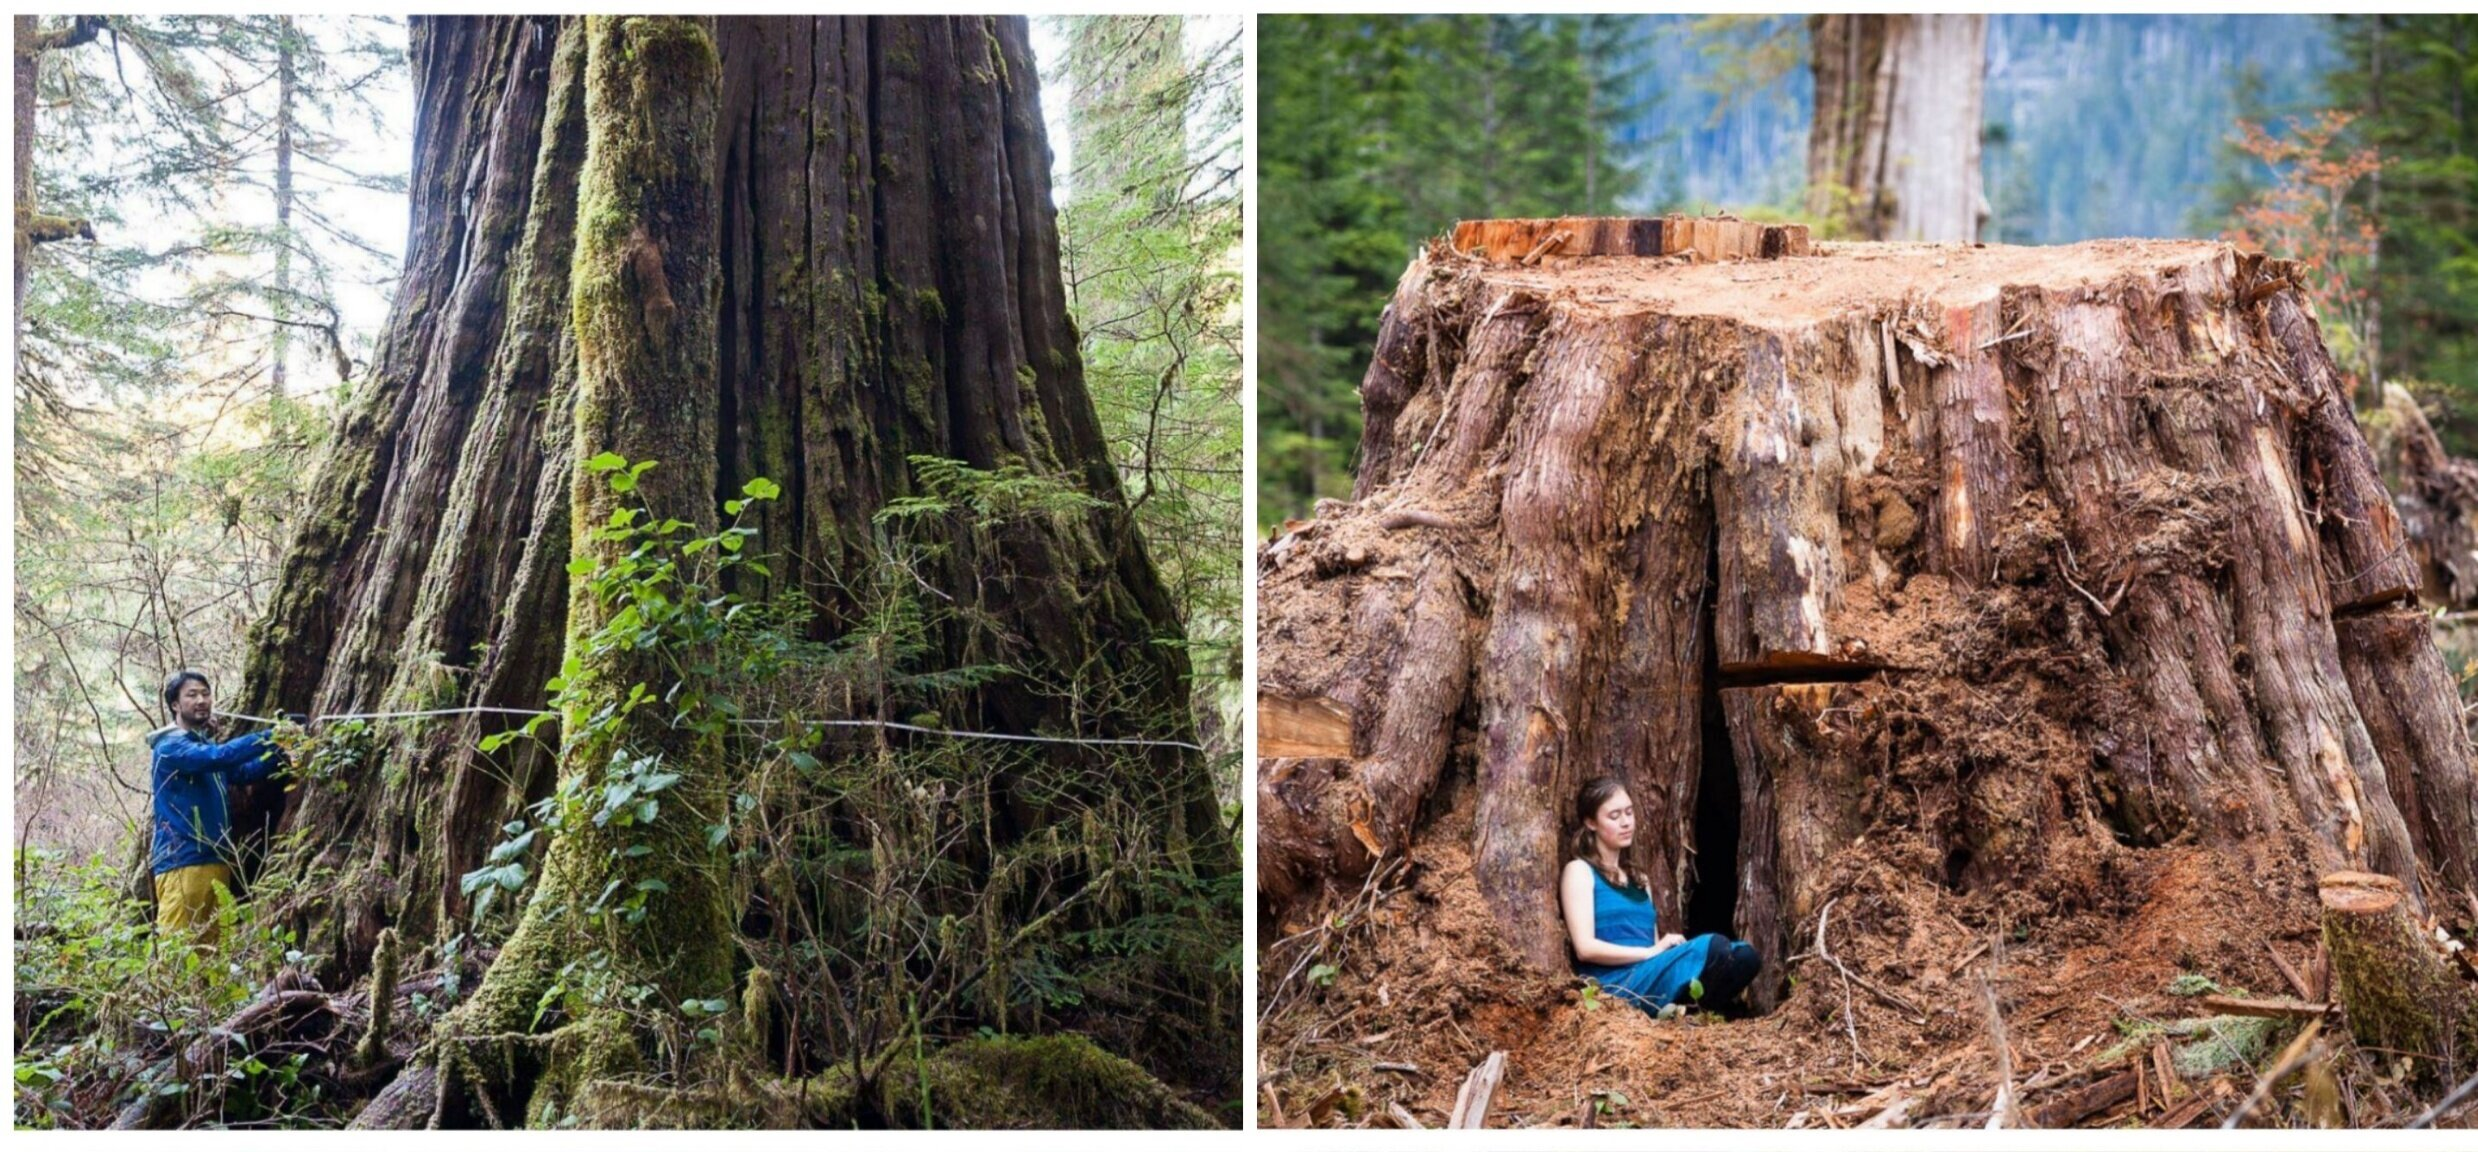 Temperate rainforest dynamics in coastal british columbia. Send A Message Protect Bc S Endangered Old Growth Forests Endangered Ecosystems Alliance